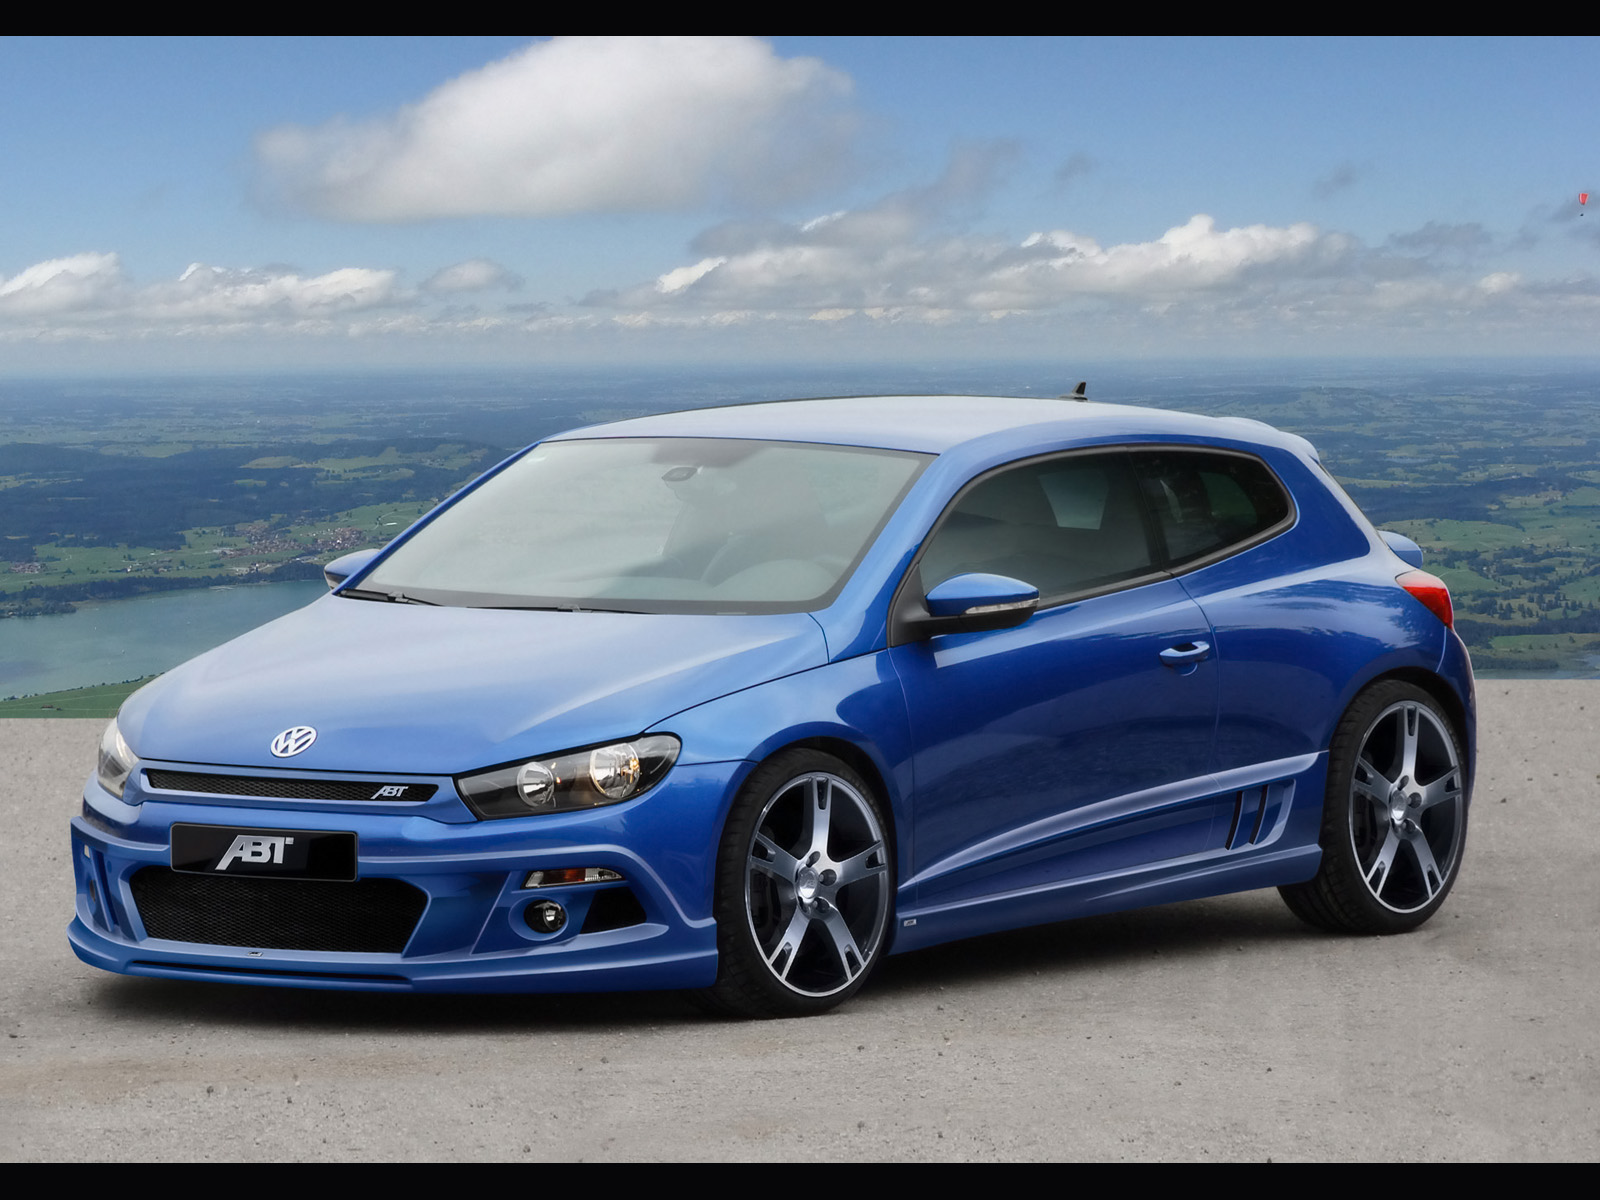 Abt Scirocco Blue Wallpapers X